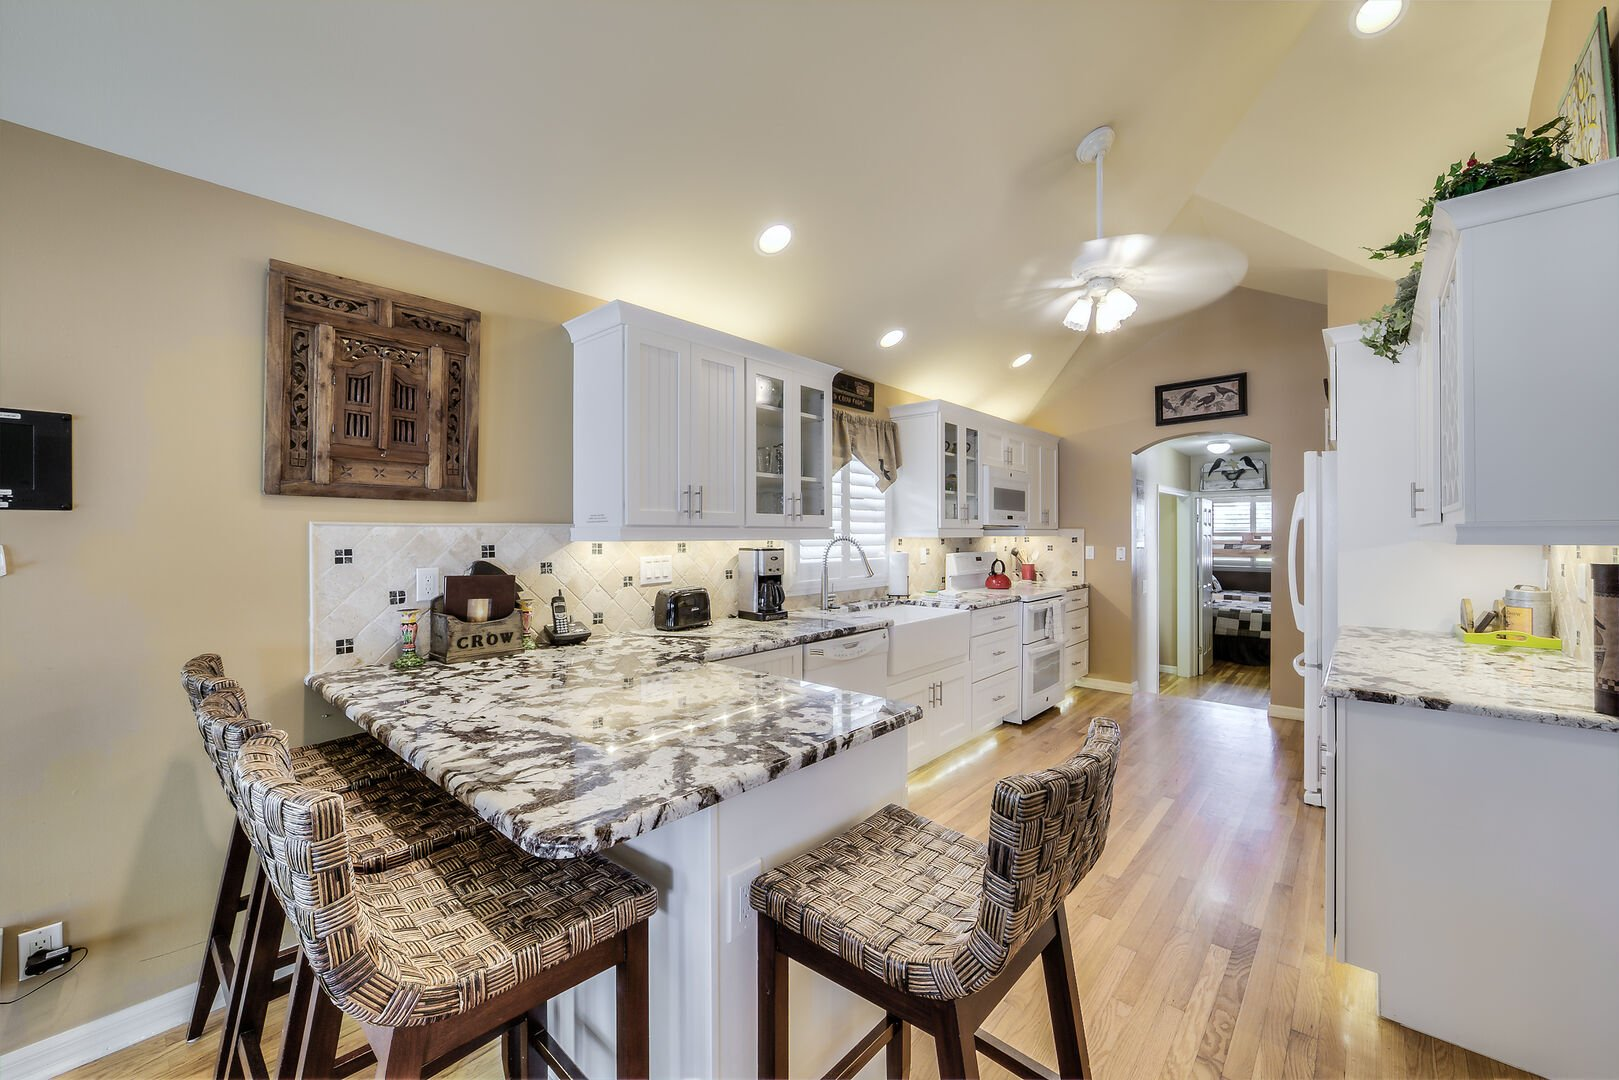 Kitchen with Countertop Stools in Crow's Nest